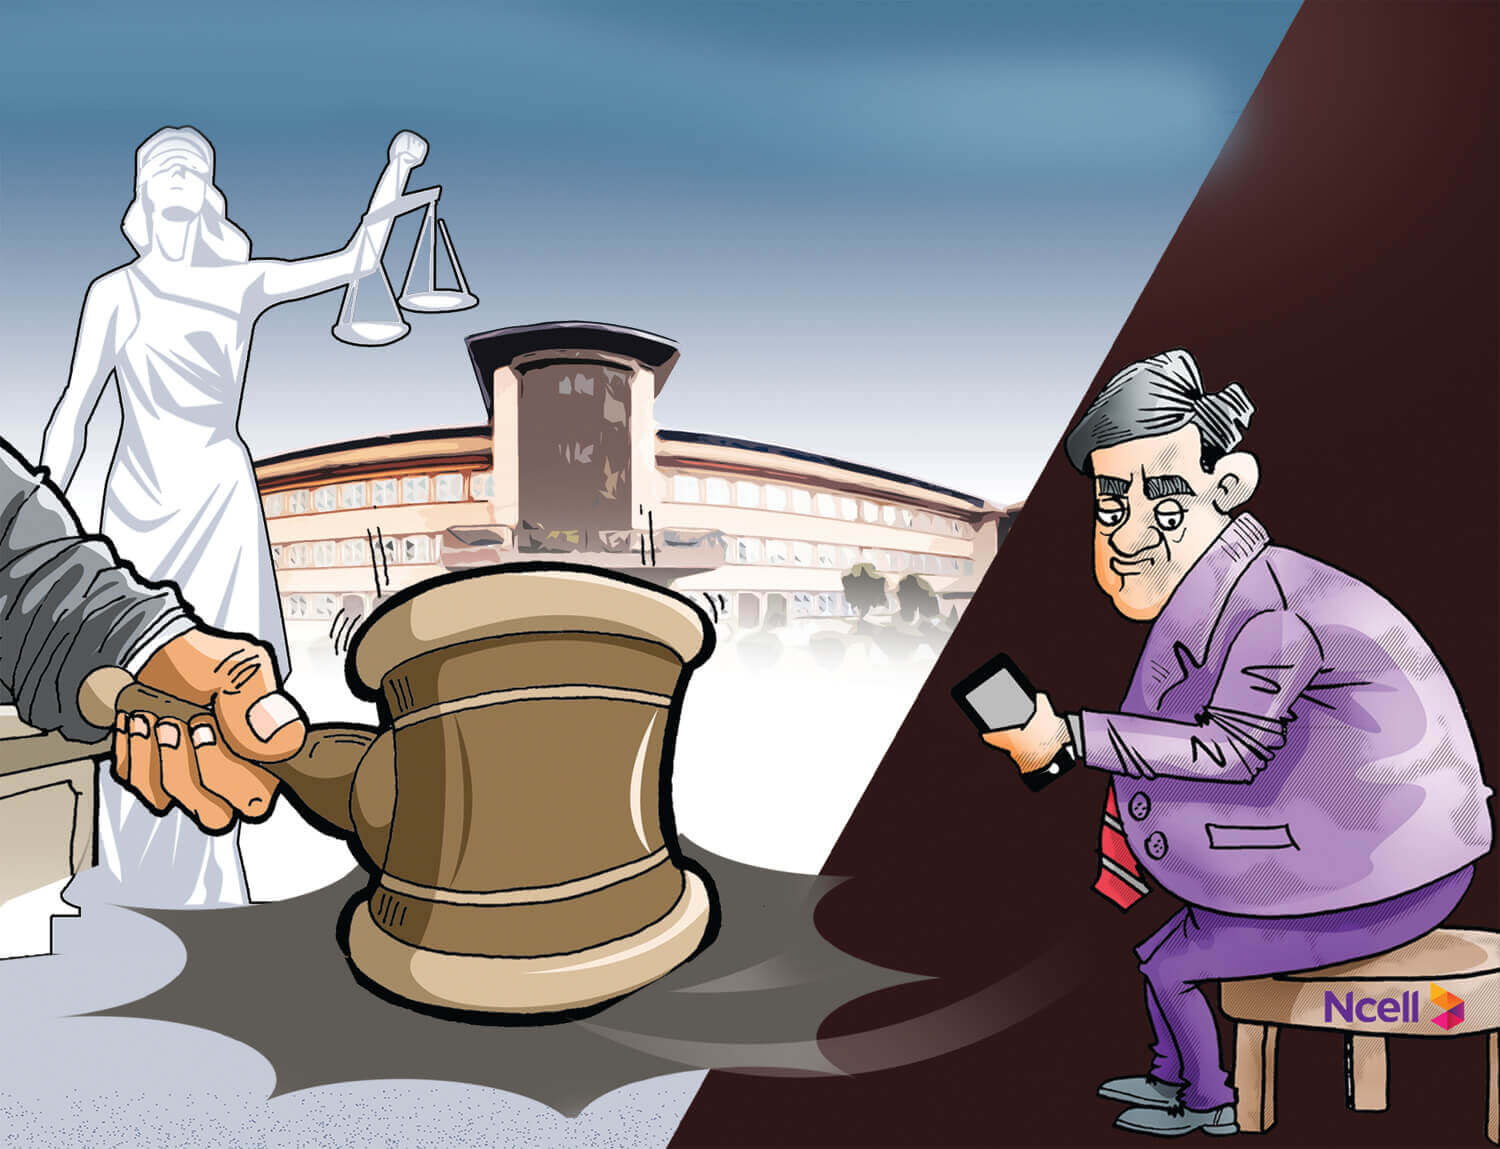 Nepal has strong case on Ncell arbitration